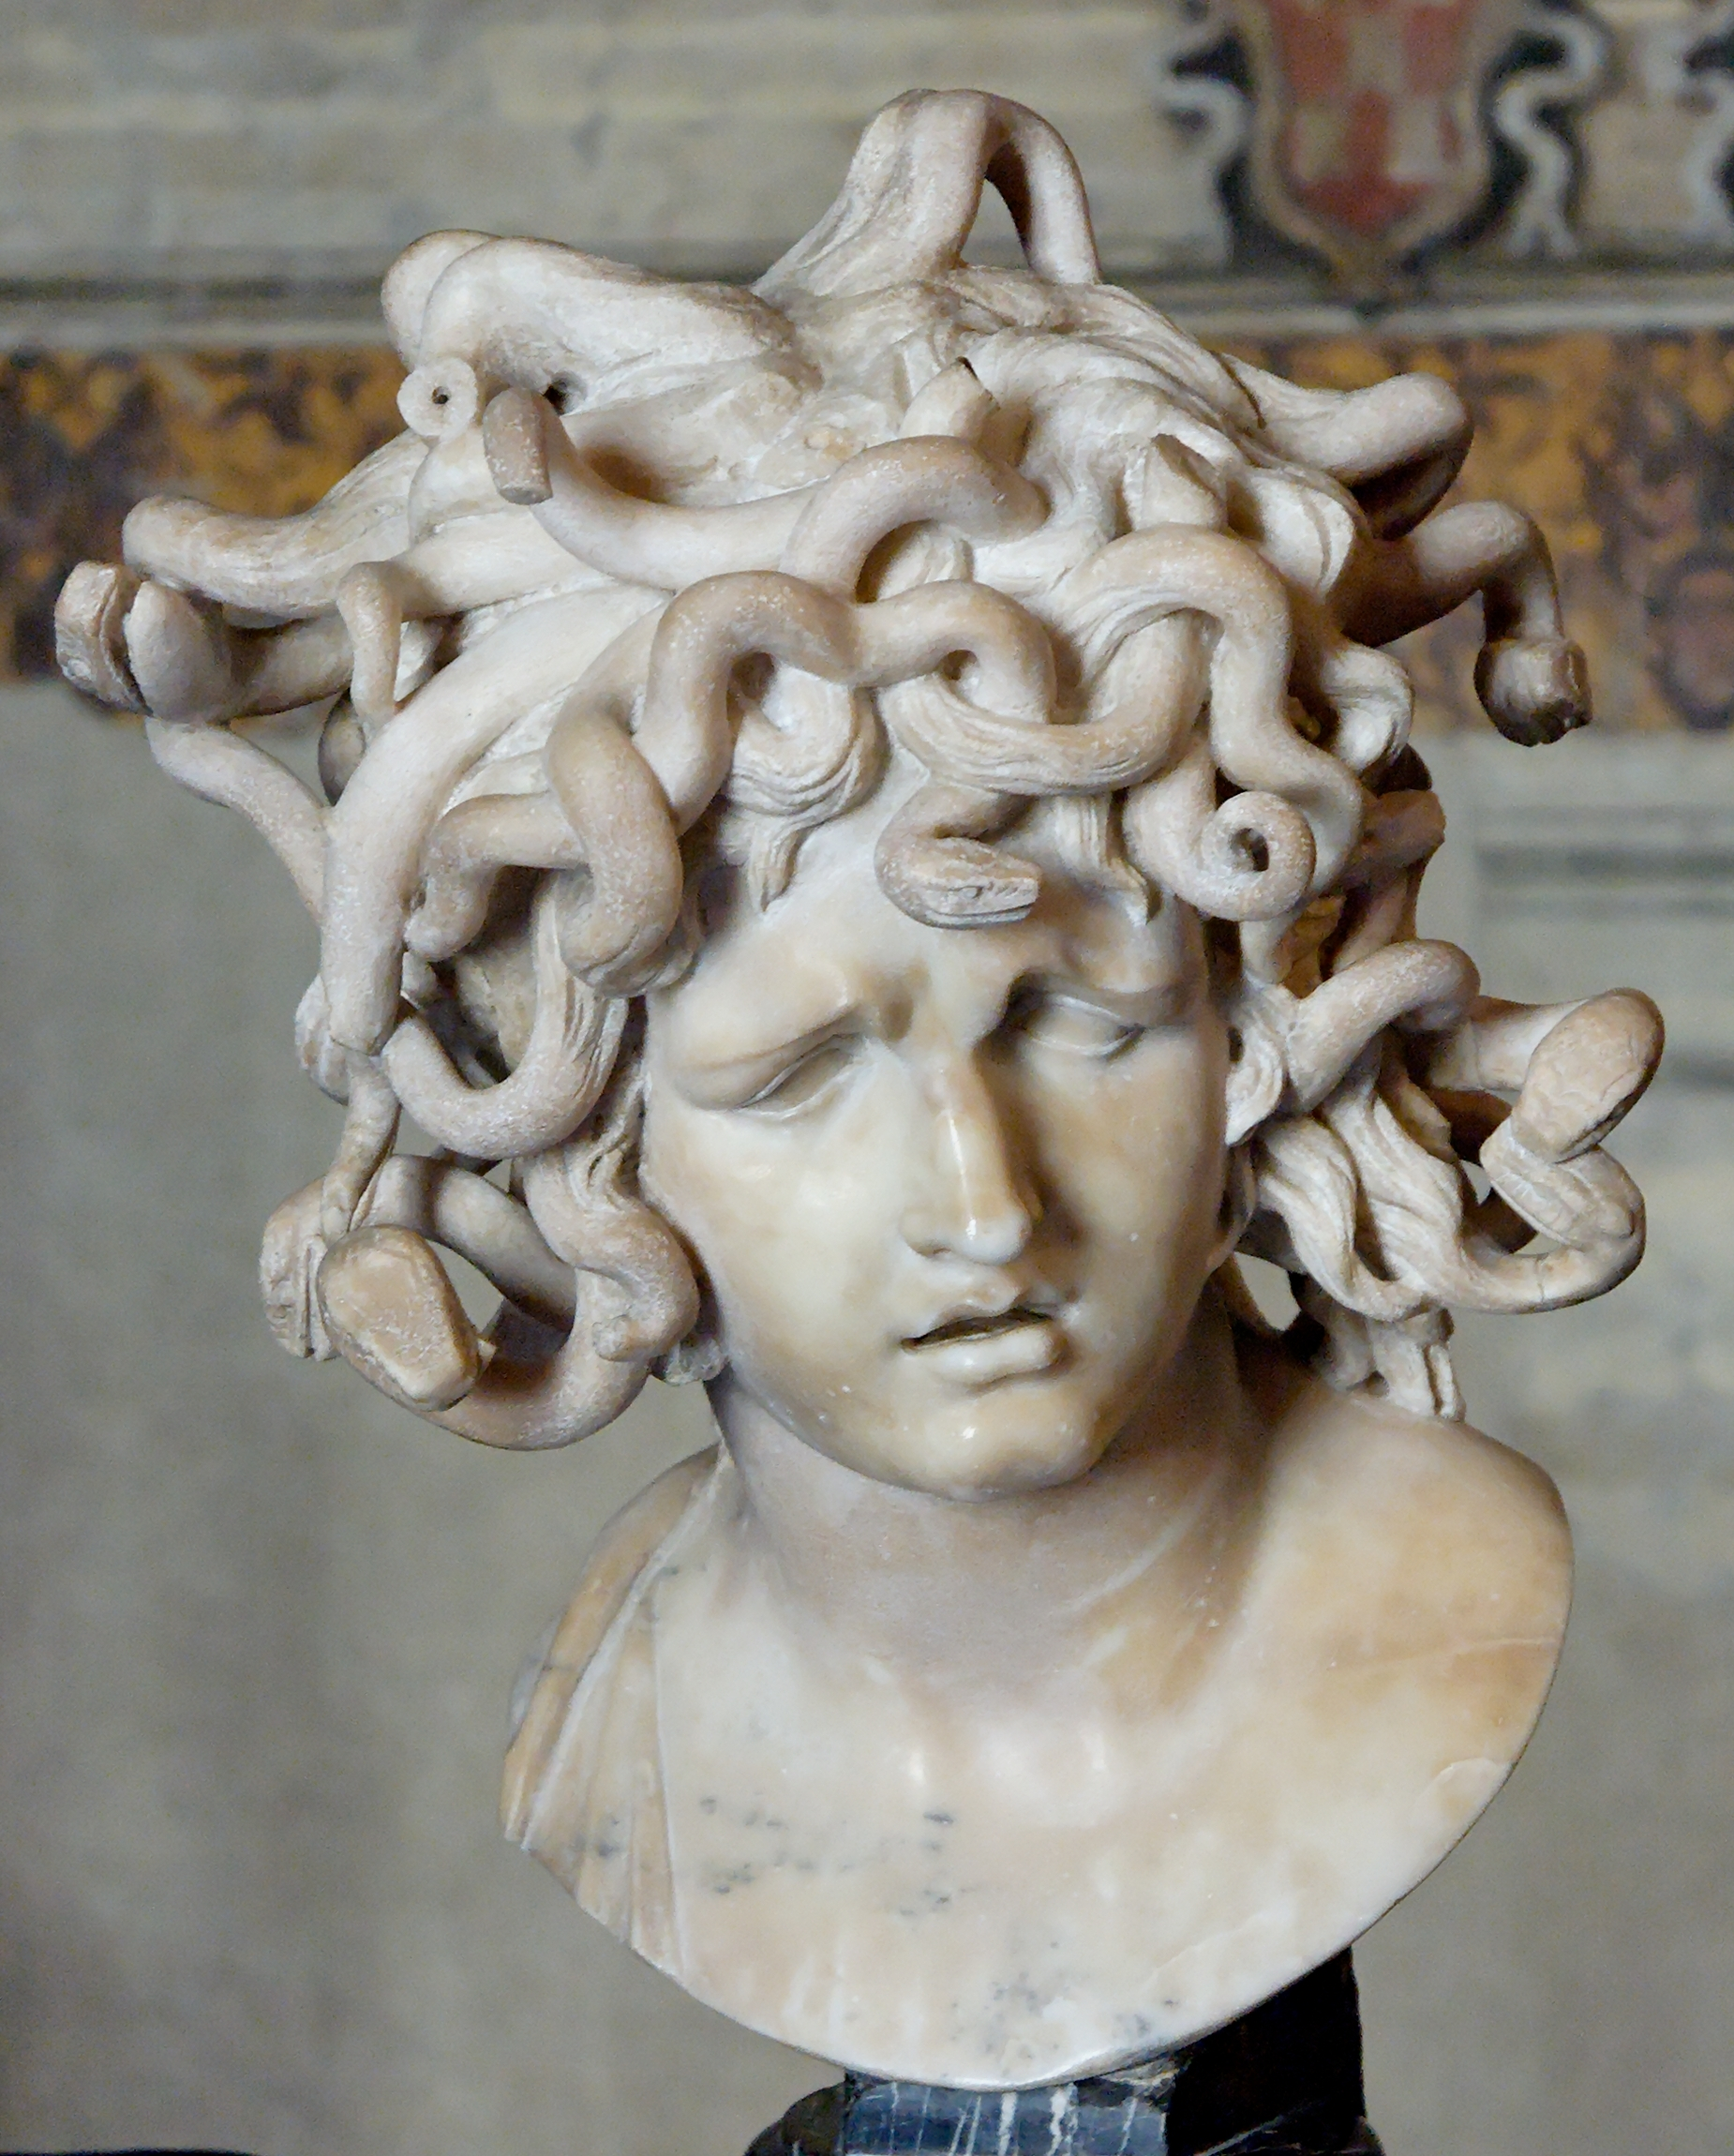 The myth of Perseus and Medusa